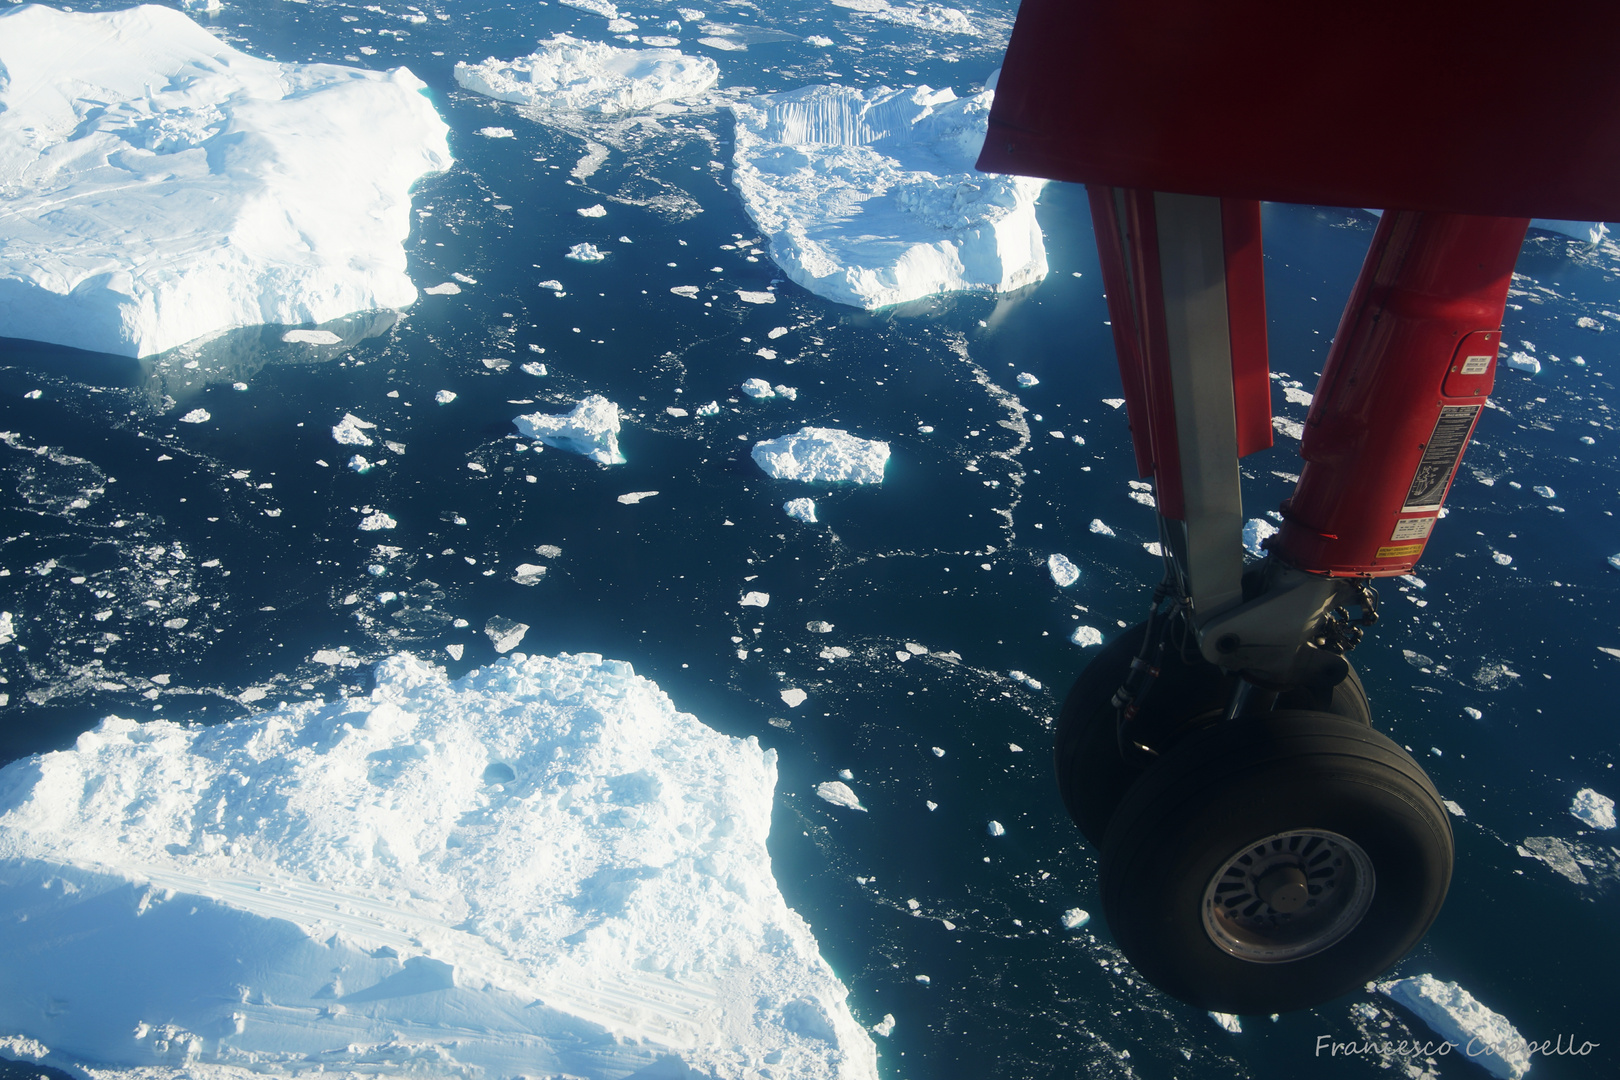 approach to Ilulissat